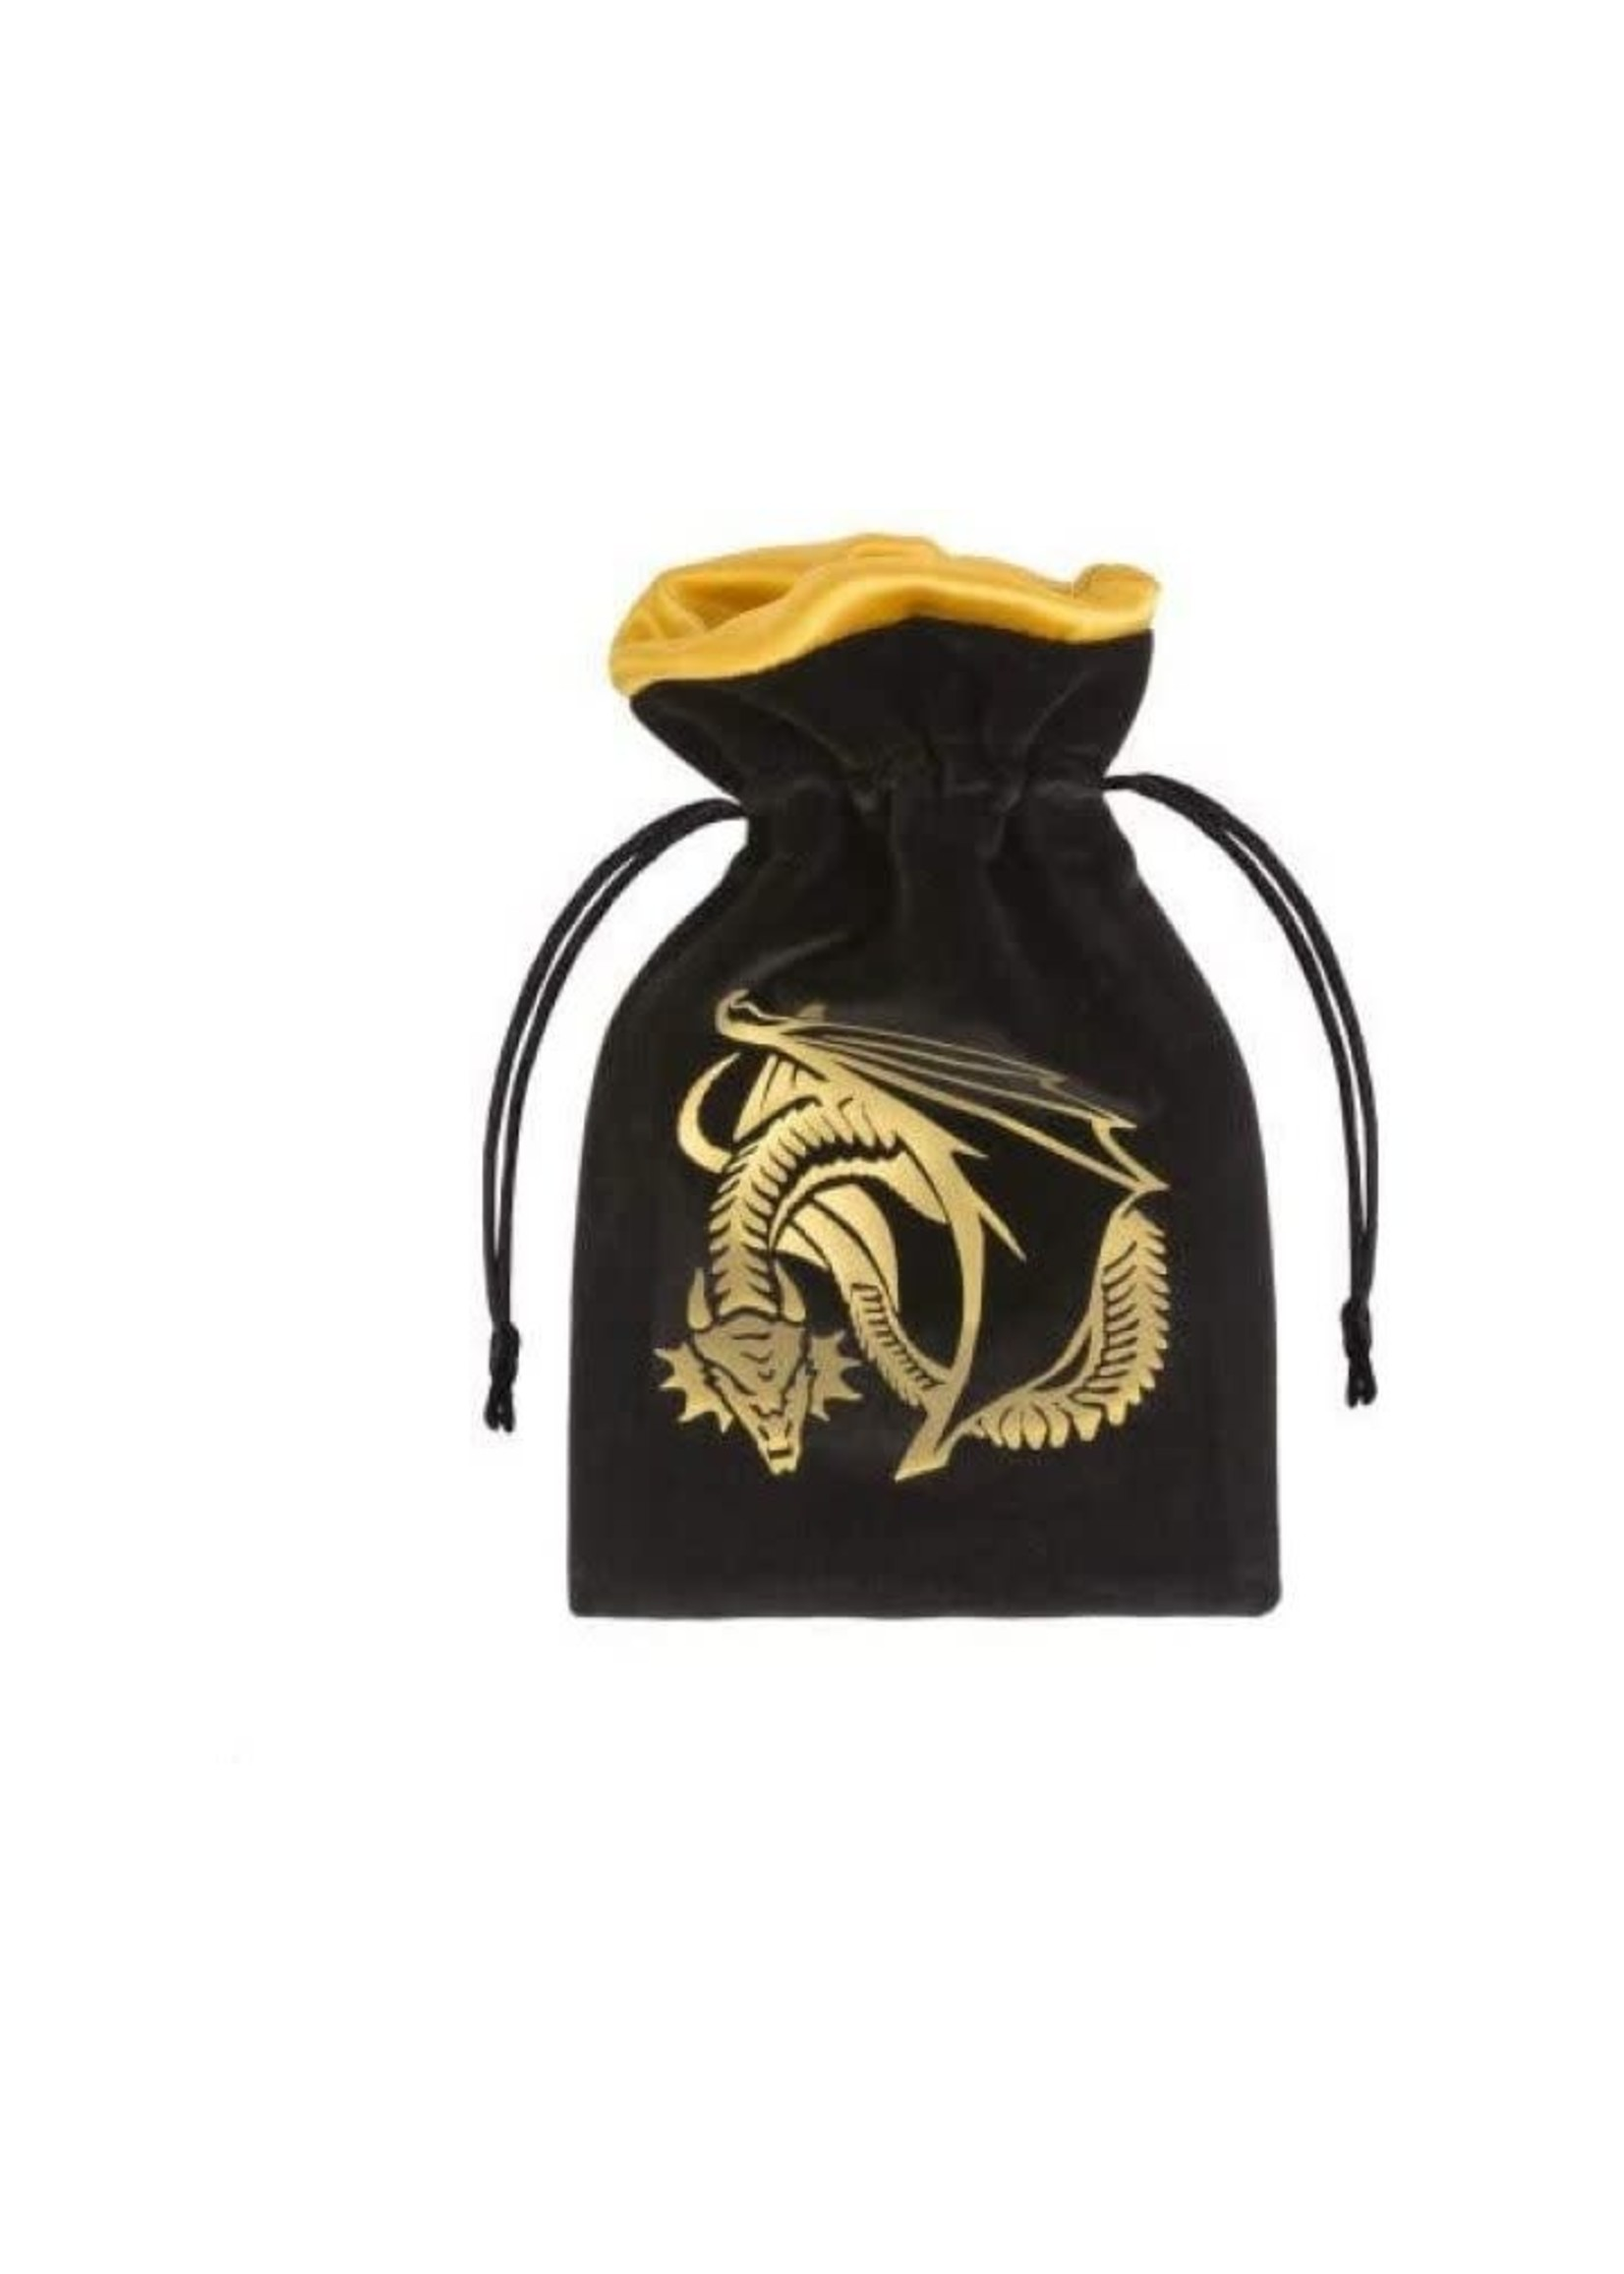 Dice Bag Black And Golden Velour